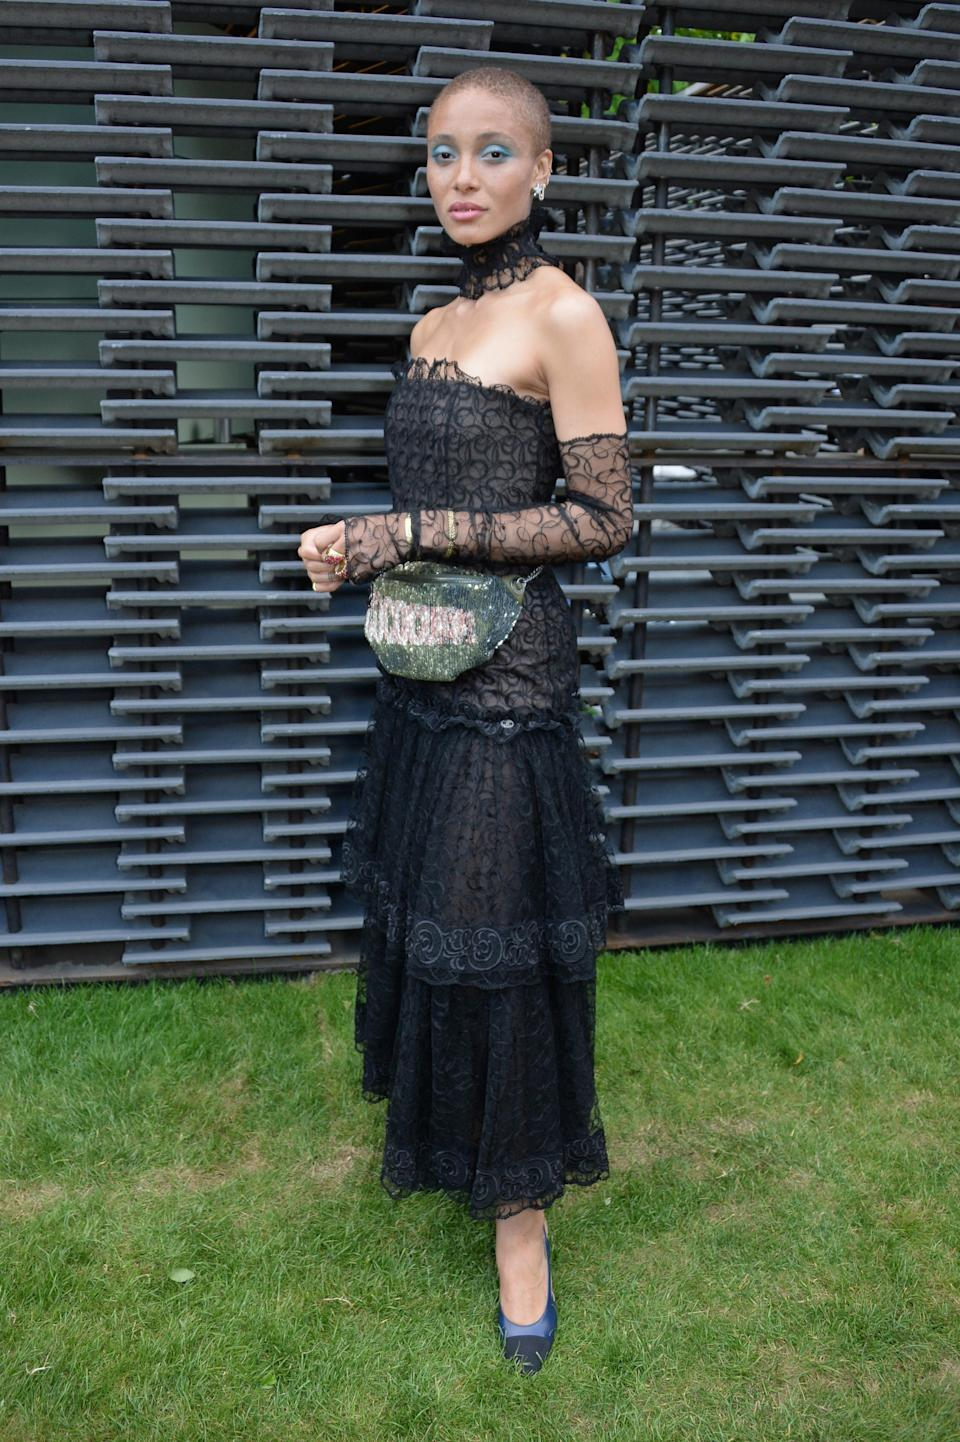 <p>Adwoa Aboah stole the sartorial spotlight at the Serpentine's annual party in an off-the-shoulder lace dress by Chanel. That sequinned belt bag and co-ordinating eyeshadow? We are not worthy. [Photo: Getty] </p>